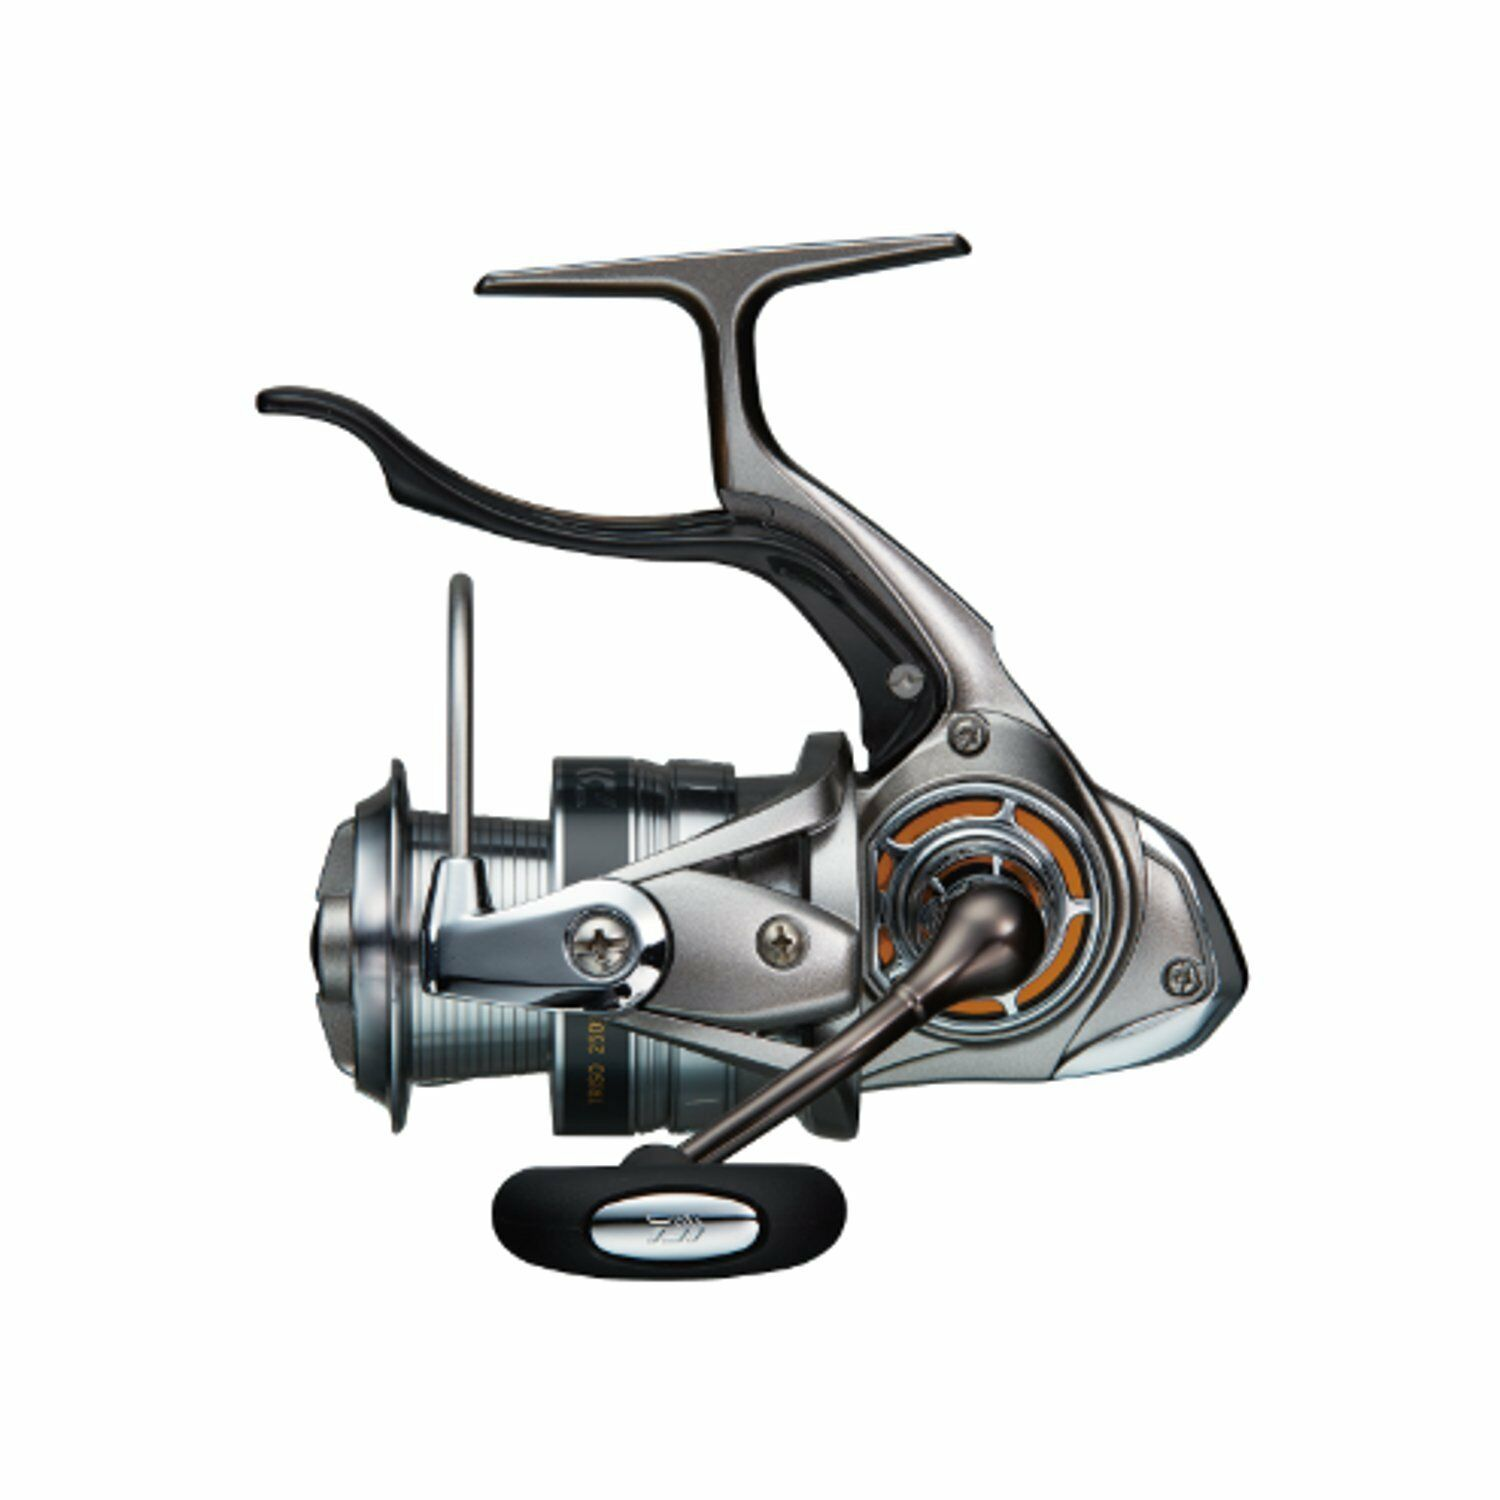 Daiwa Spinning Fishing Reel 16 TRISO 2000H-LBD from japan【Brand New in Box】